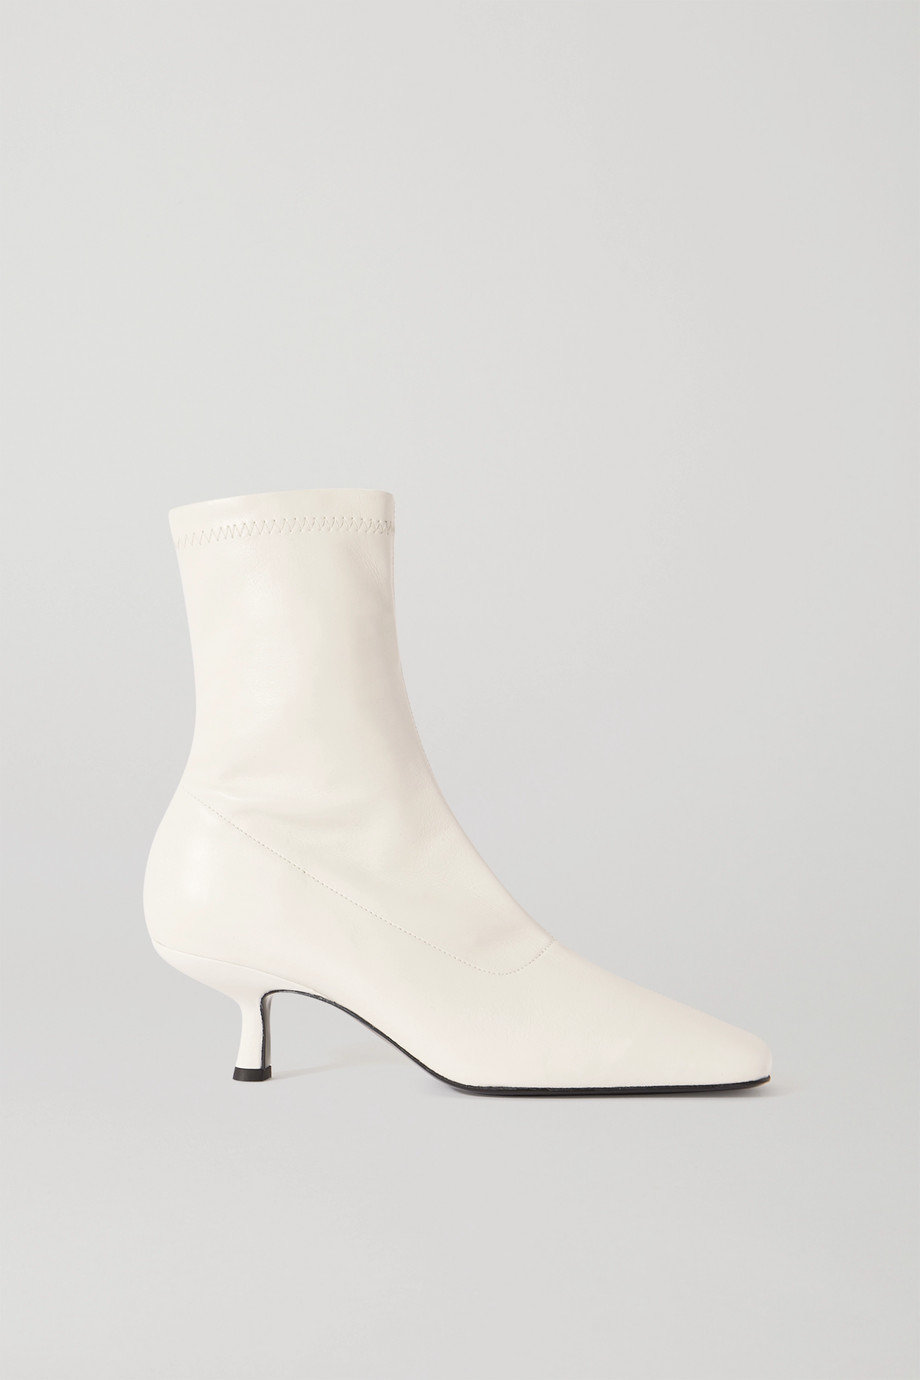 BY FAR Bottines en cuir Audrey